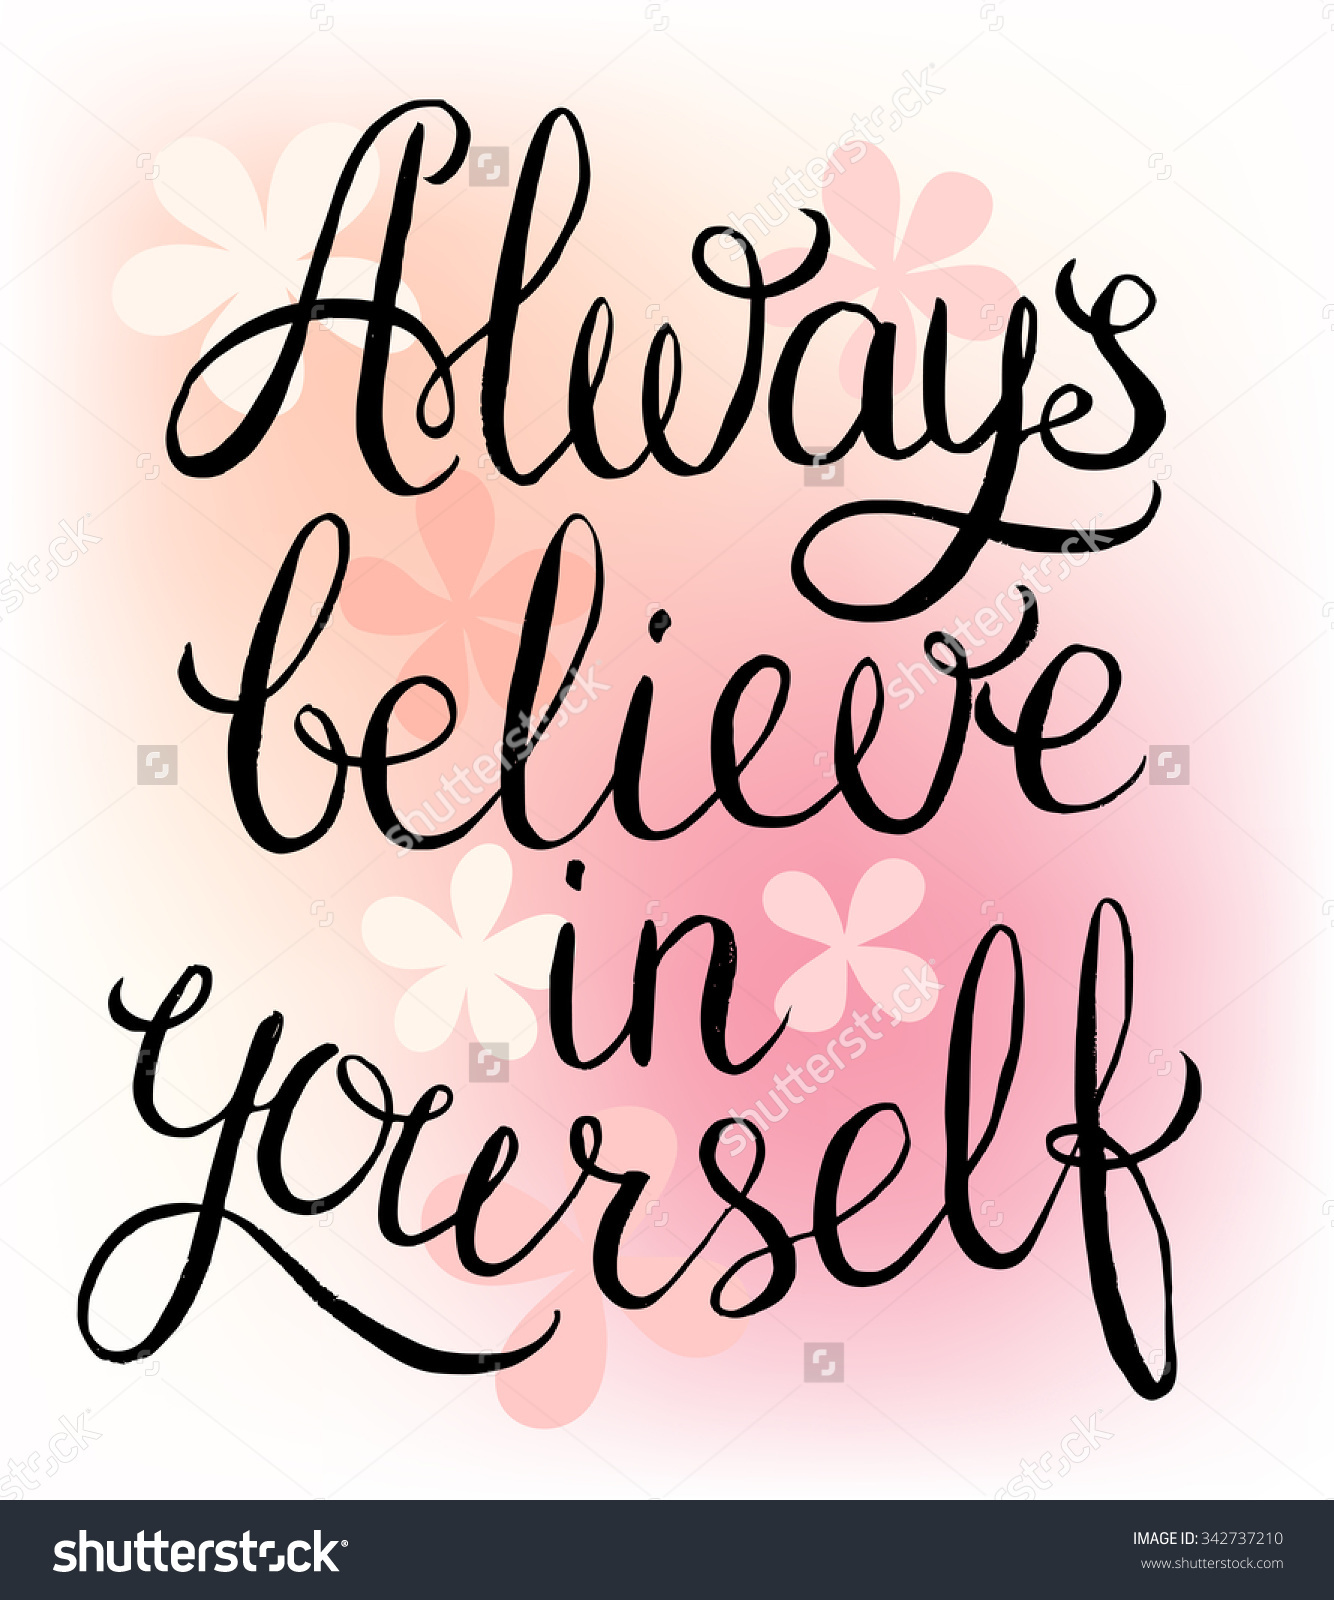 believing in yourself Sometimes people come into your life and you know right away that they were meant to be there to serve some sort of purpose, teach you a lesson or.